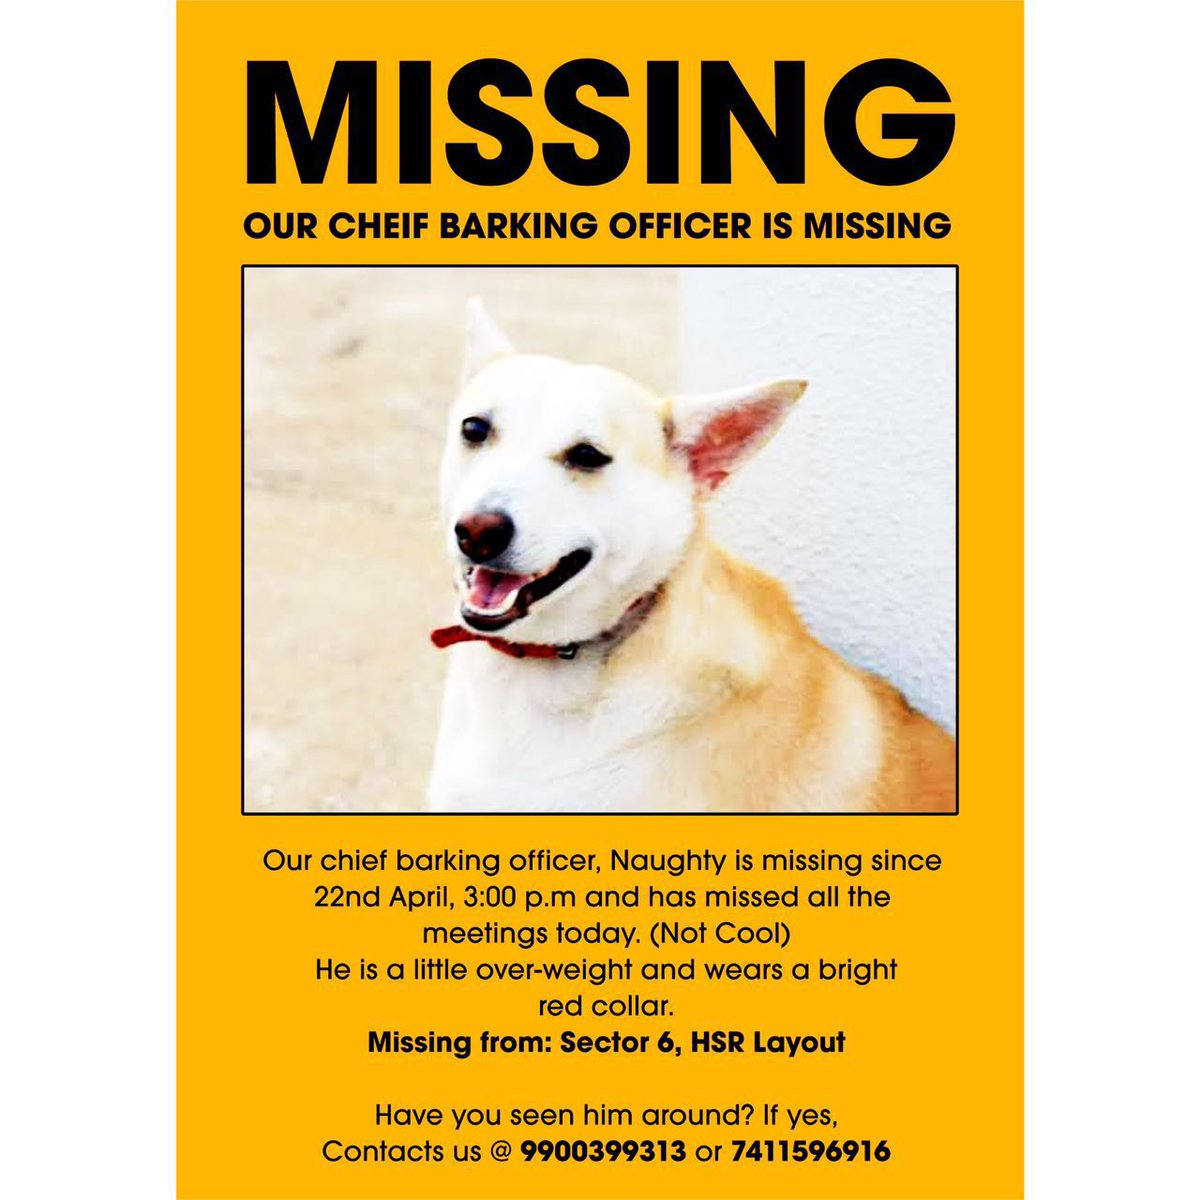 Our dog is missing. HSR, Blore. RT to help? https://t.co/uT7bDdMDzu